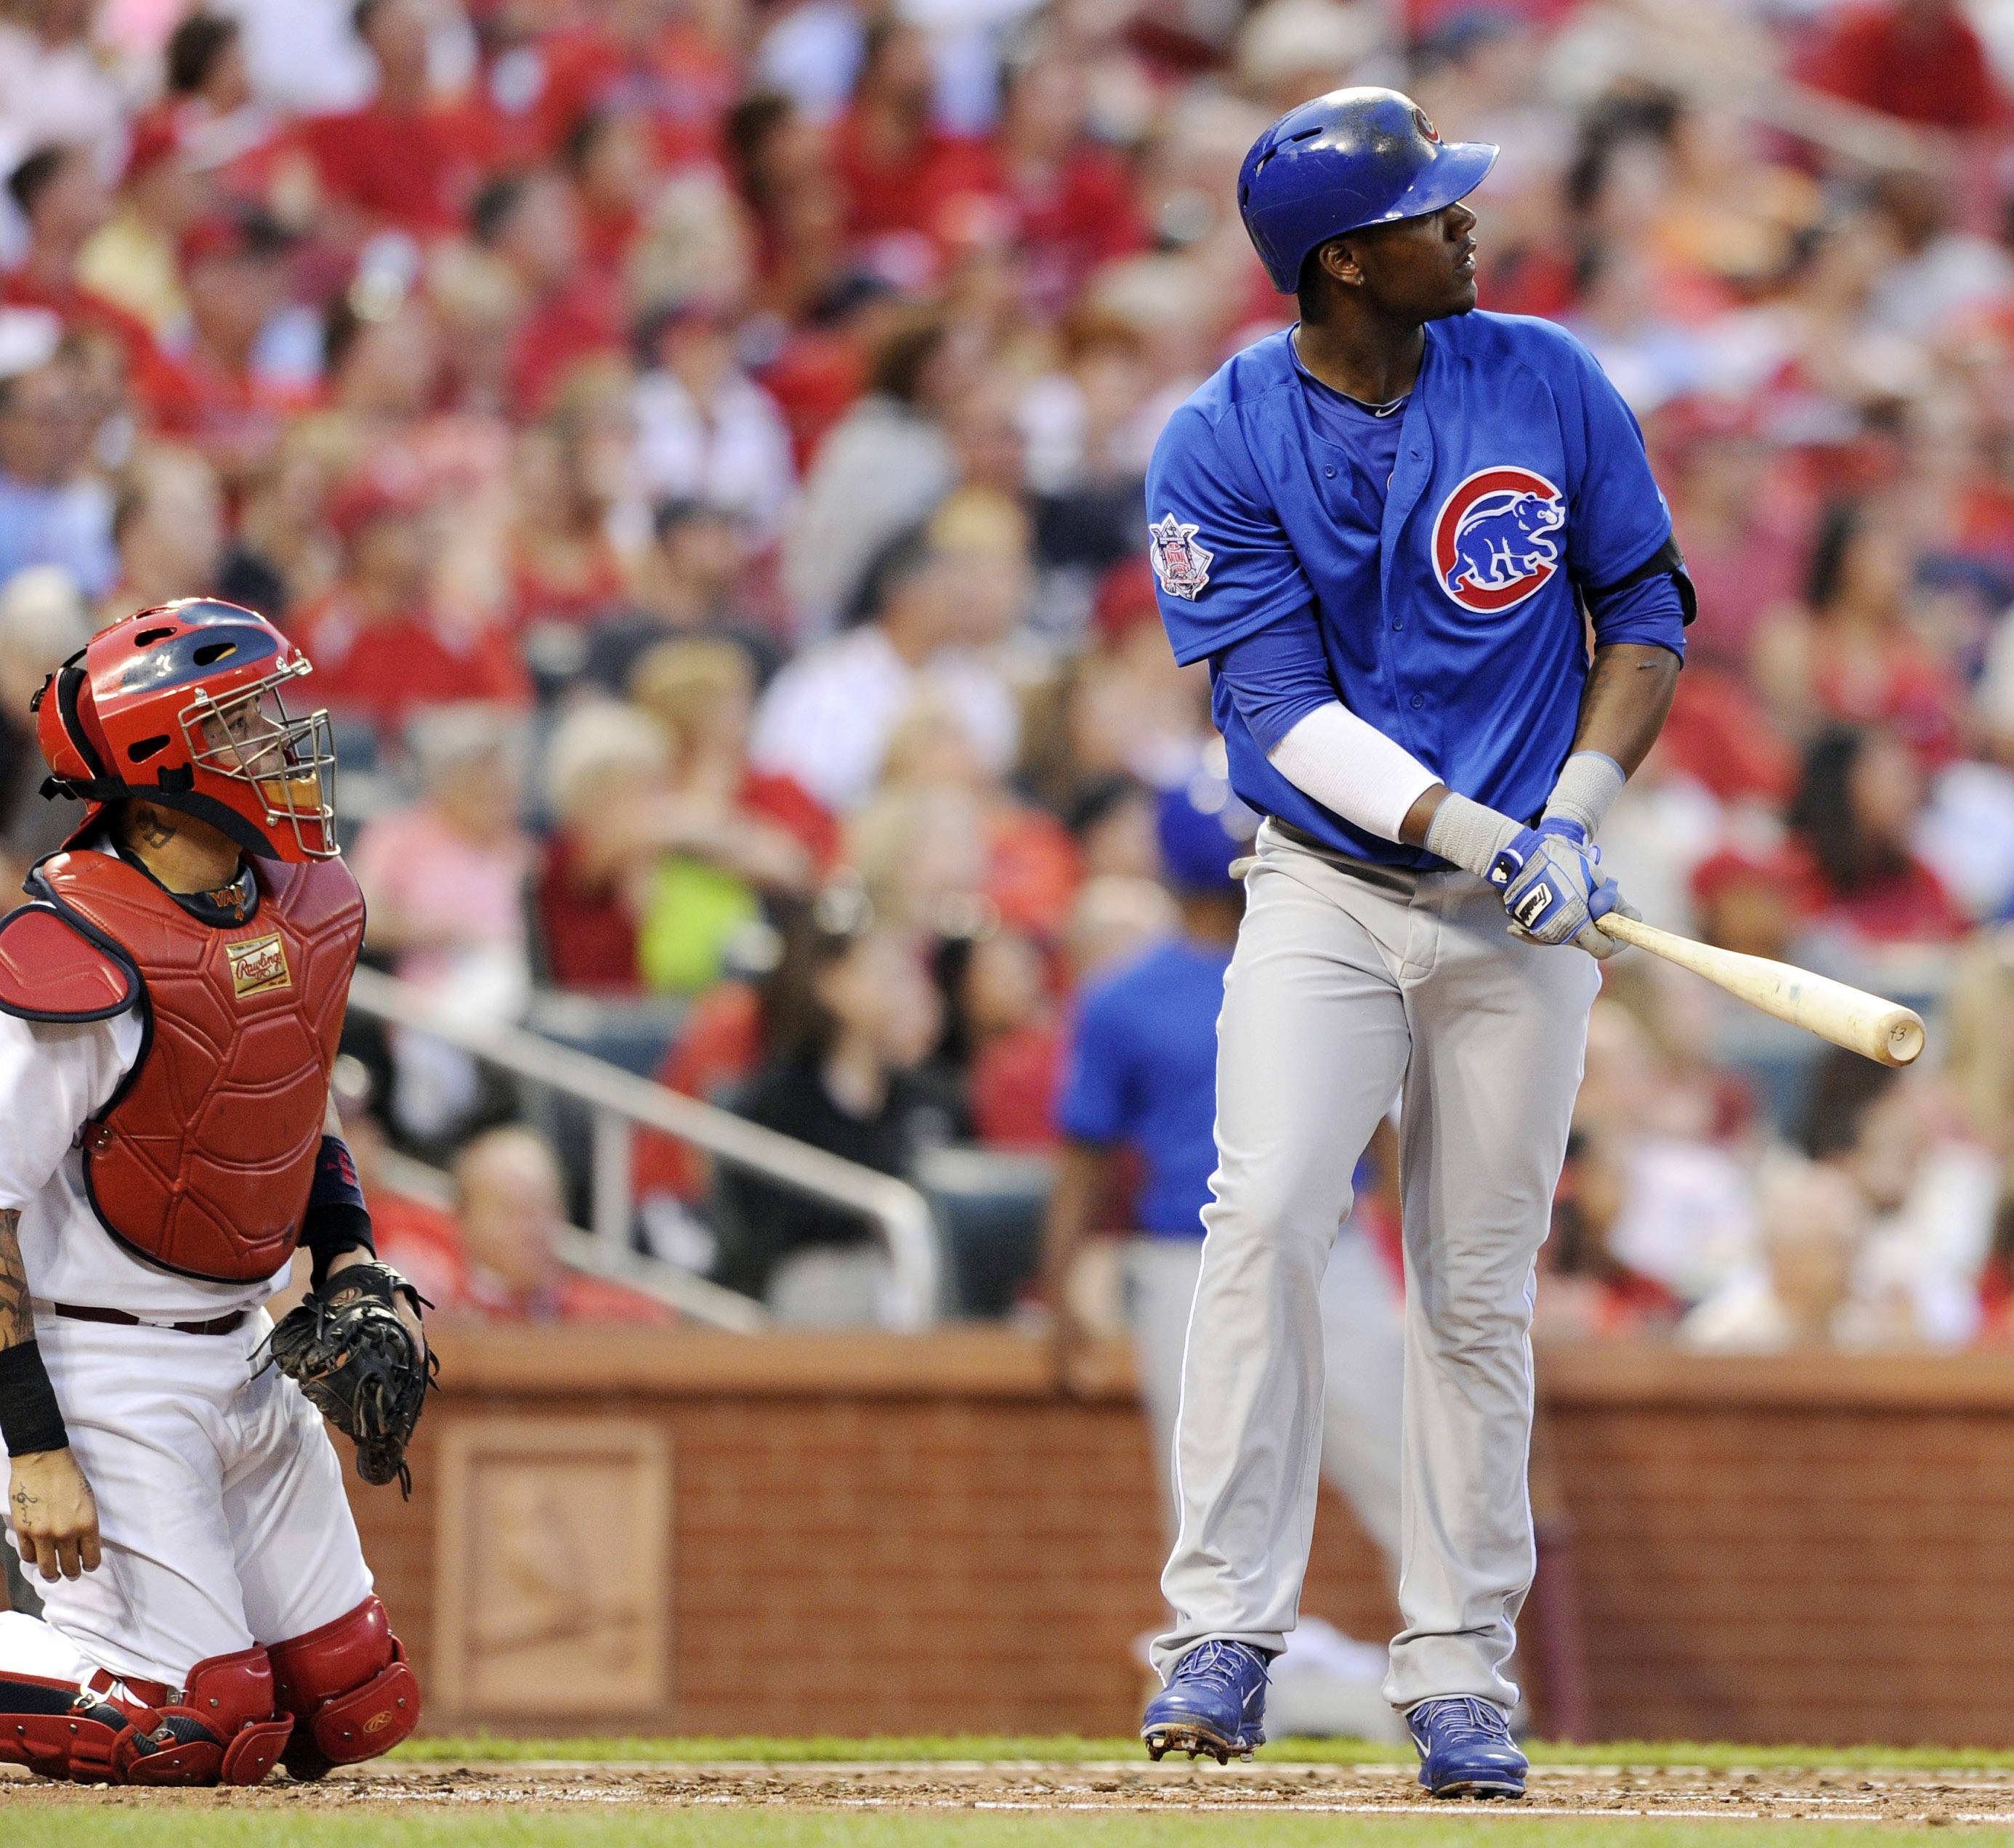 The Cubs' Junior Lake watches his three-run home run during the second inning Monday, May 12 at Busch Stadium in St. Louis.